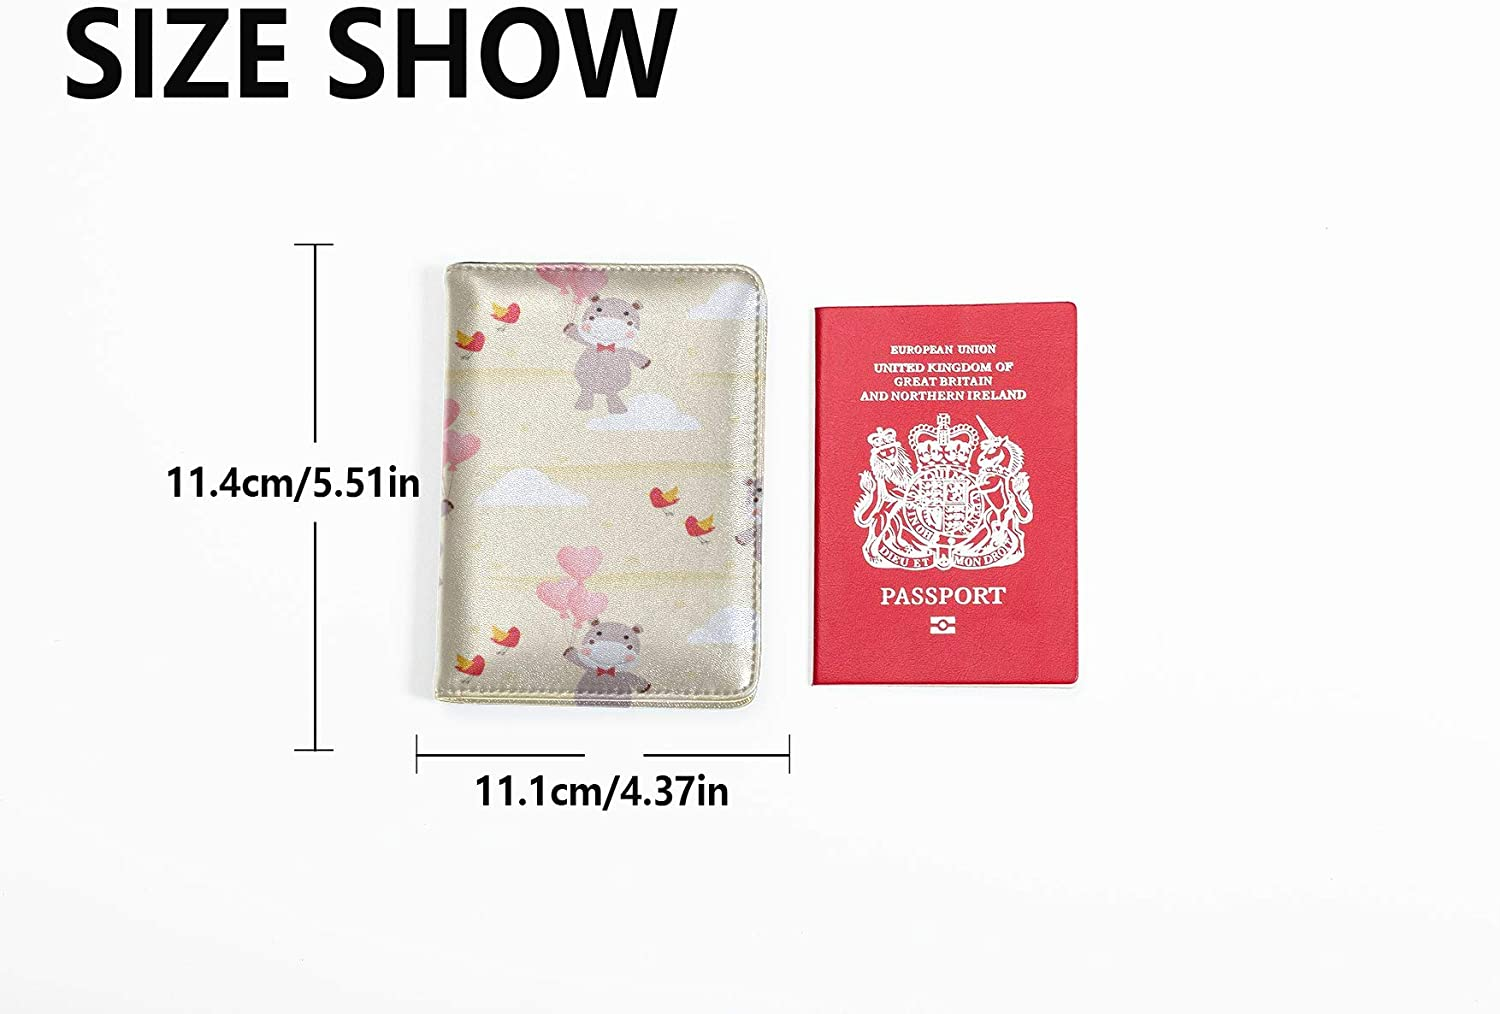 Travel Passport Case Cute Heart Shaped Animal Balloon Love Waterproof Passport Cover Multi Purpose Print Case My Passport Travel Wallets For Unisex 5.51x4.37 Inch